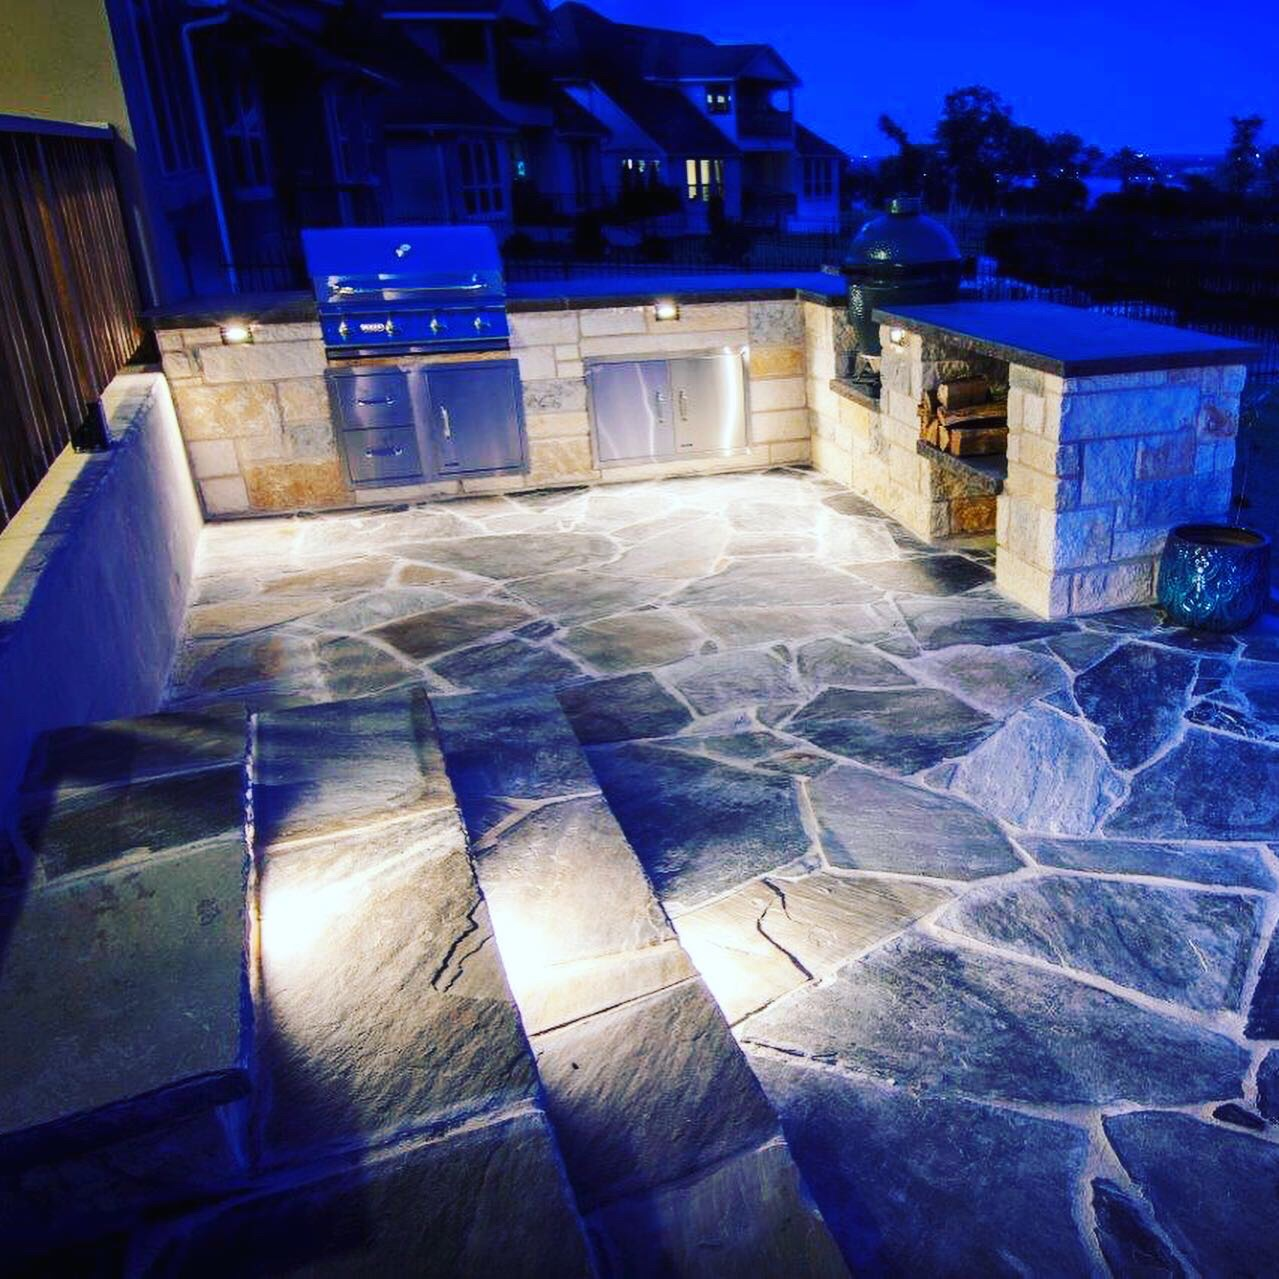 Outdoor Kitchen at Night